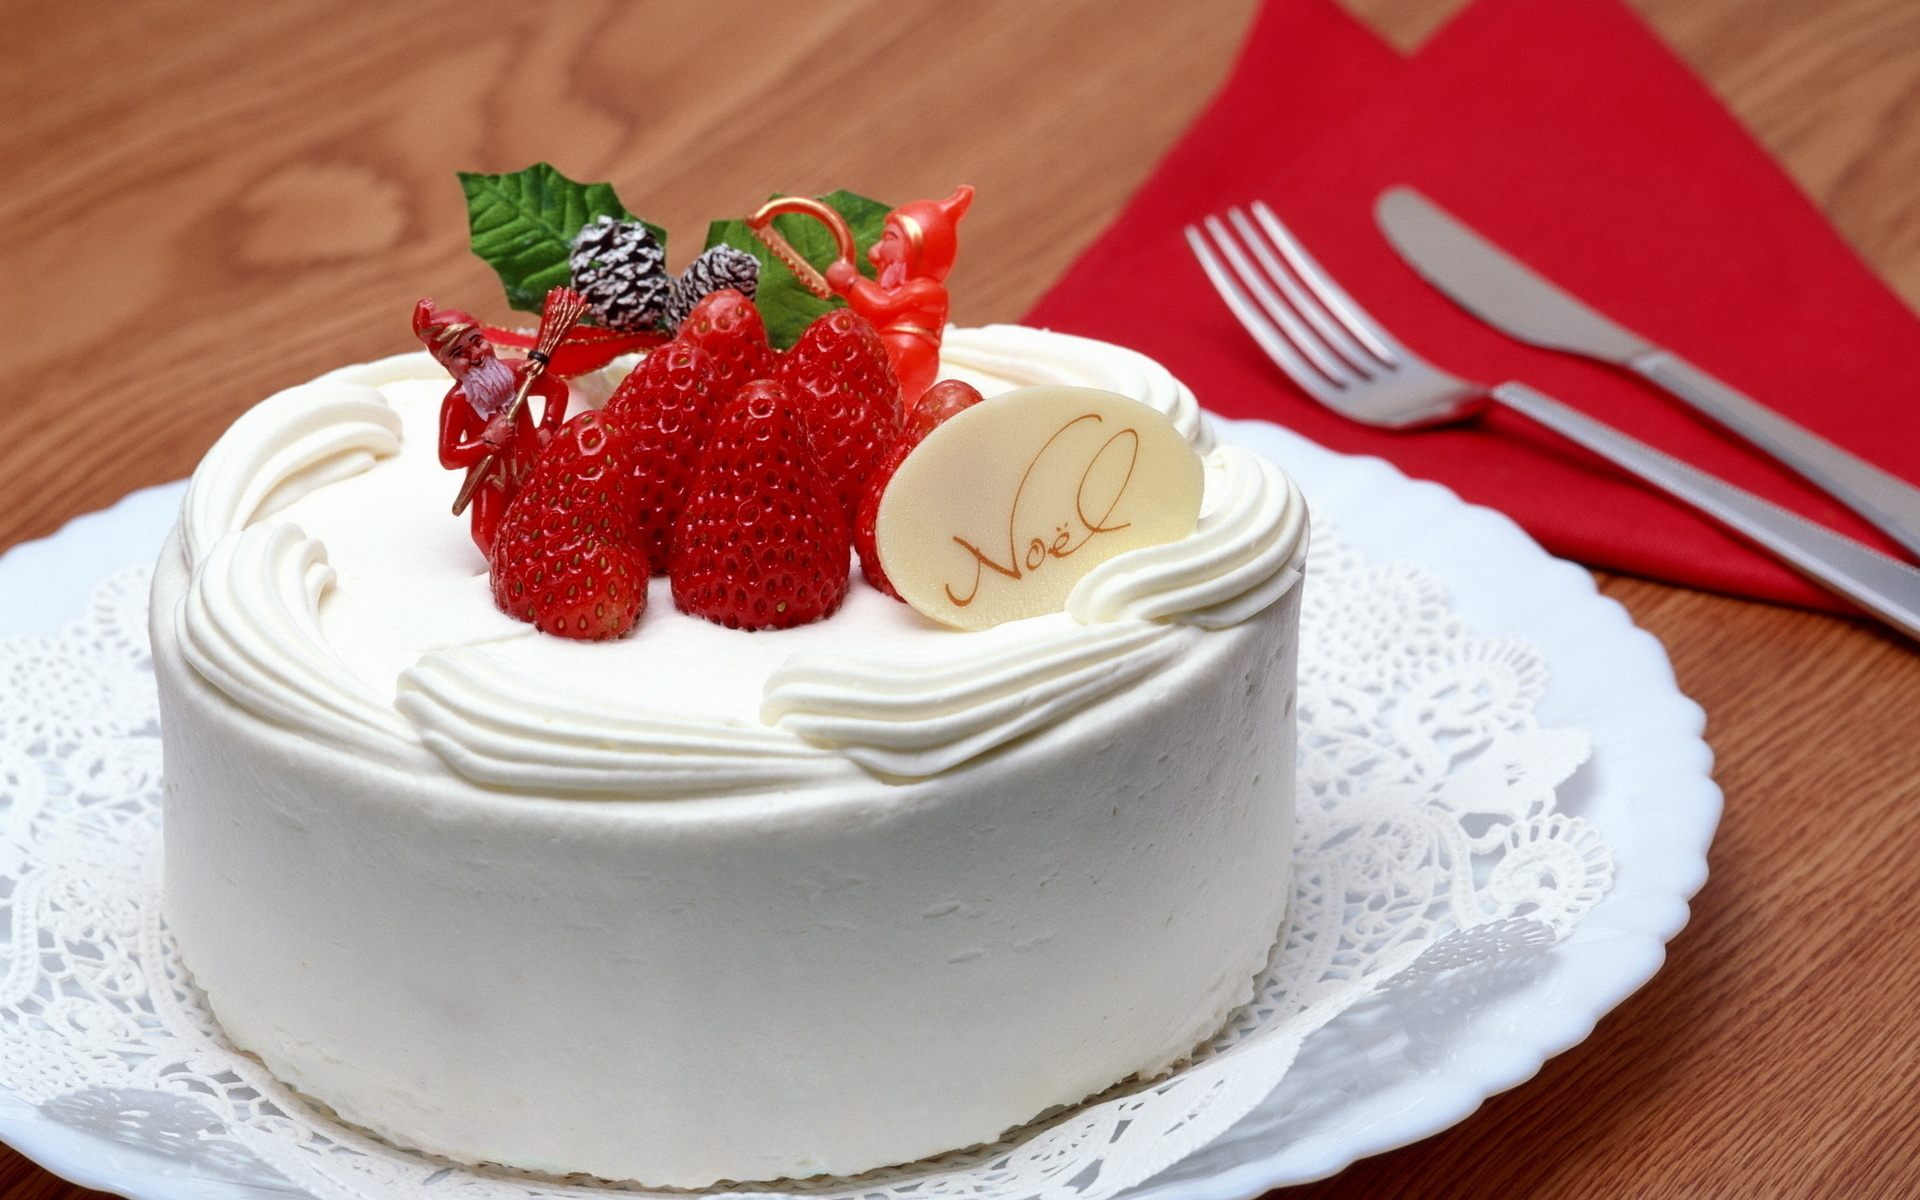 Strawberry, noel, merry christmas, holiday, happy new year, creme, cake, christmas, No l, sweet обои, картинки, фото